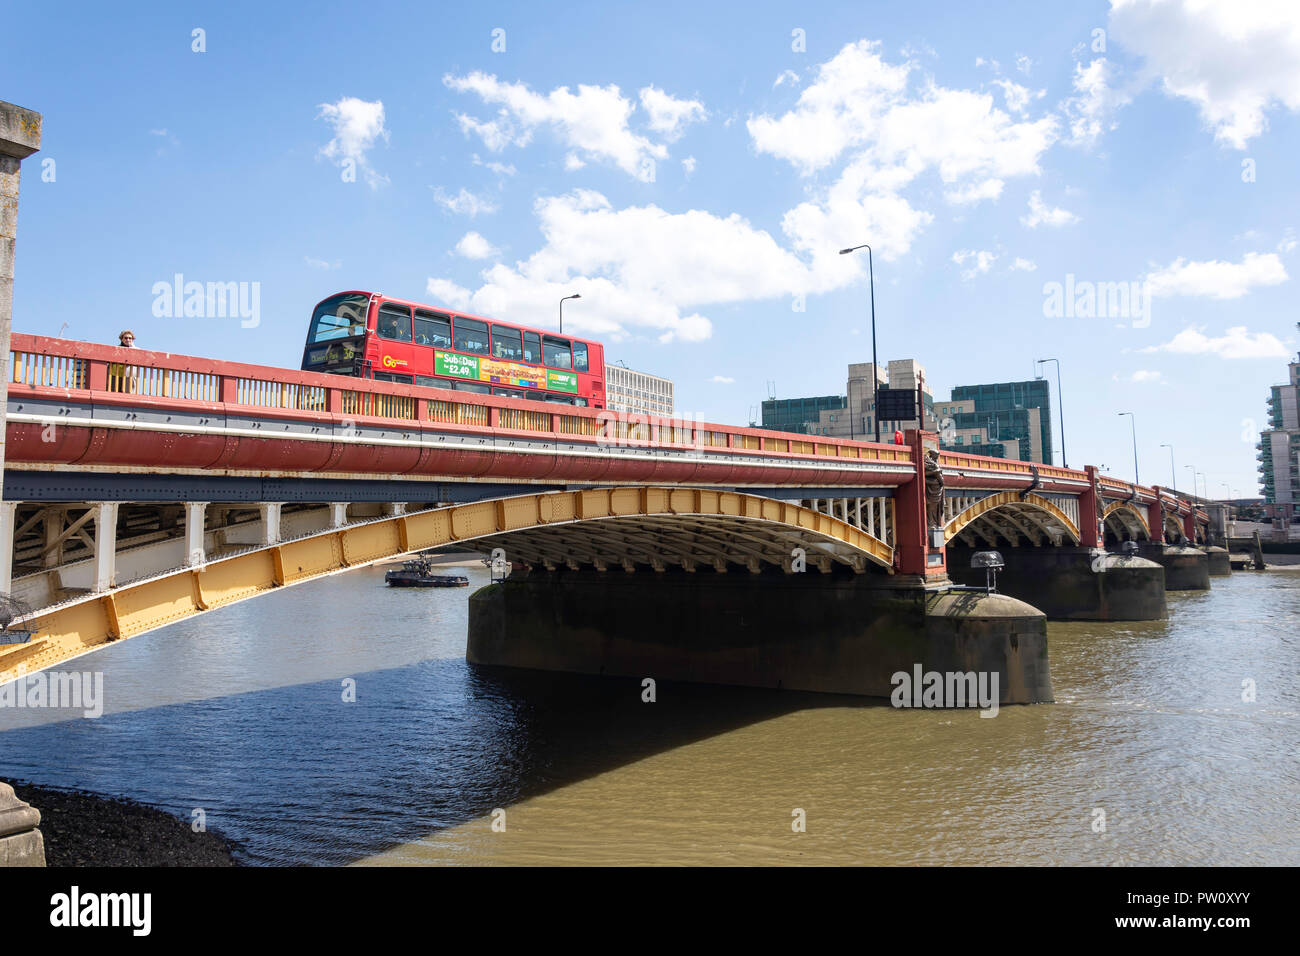 Vauxhall Bridge across River Thames, Pimlico, City of Westminster, Greater London, England, United Kingdom - Stock Image